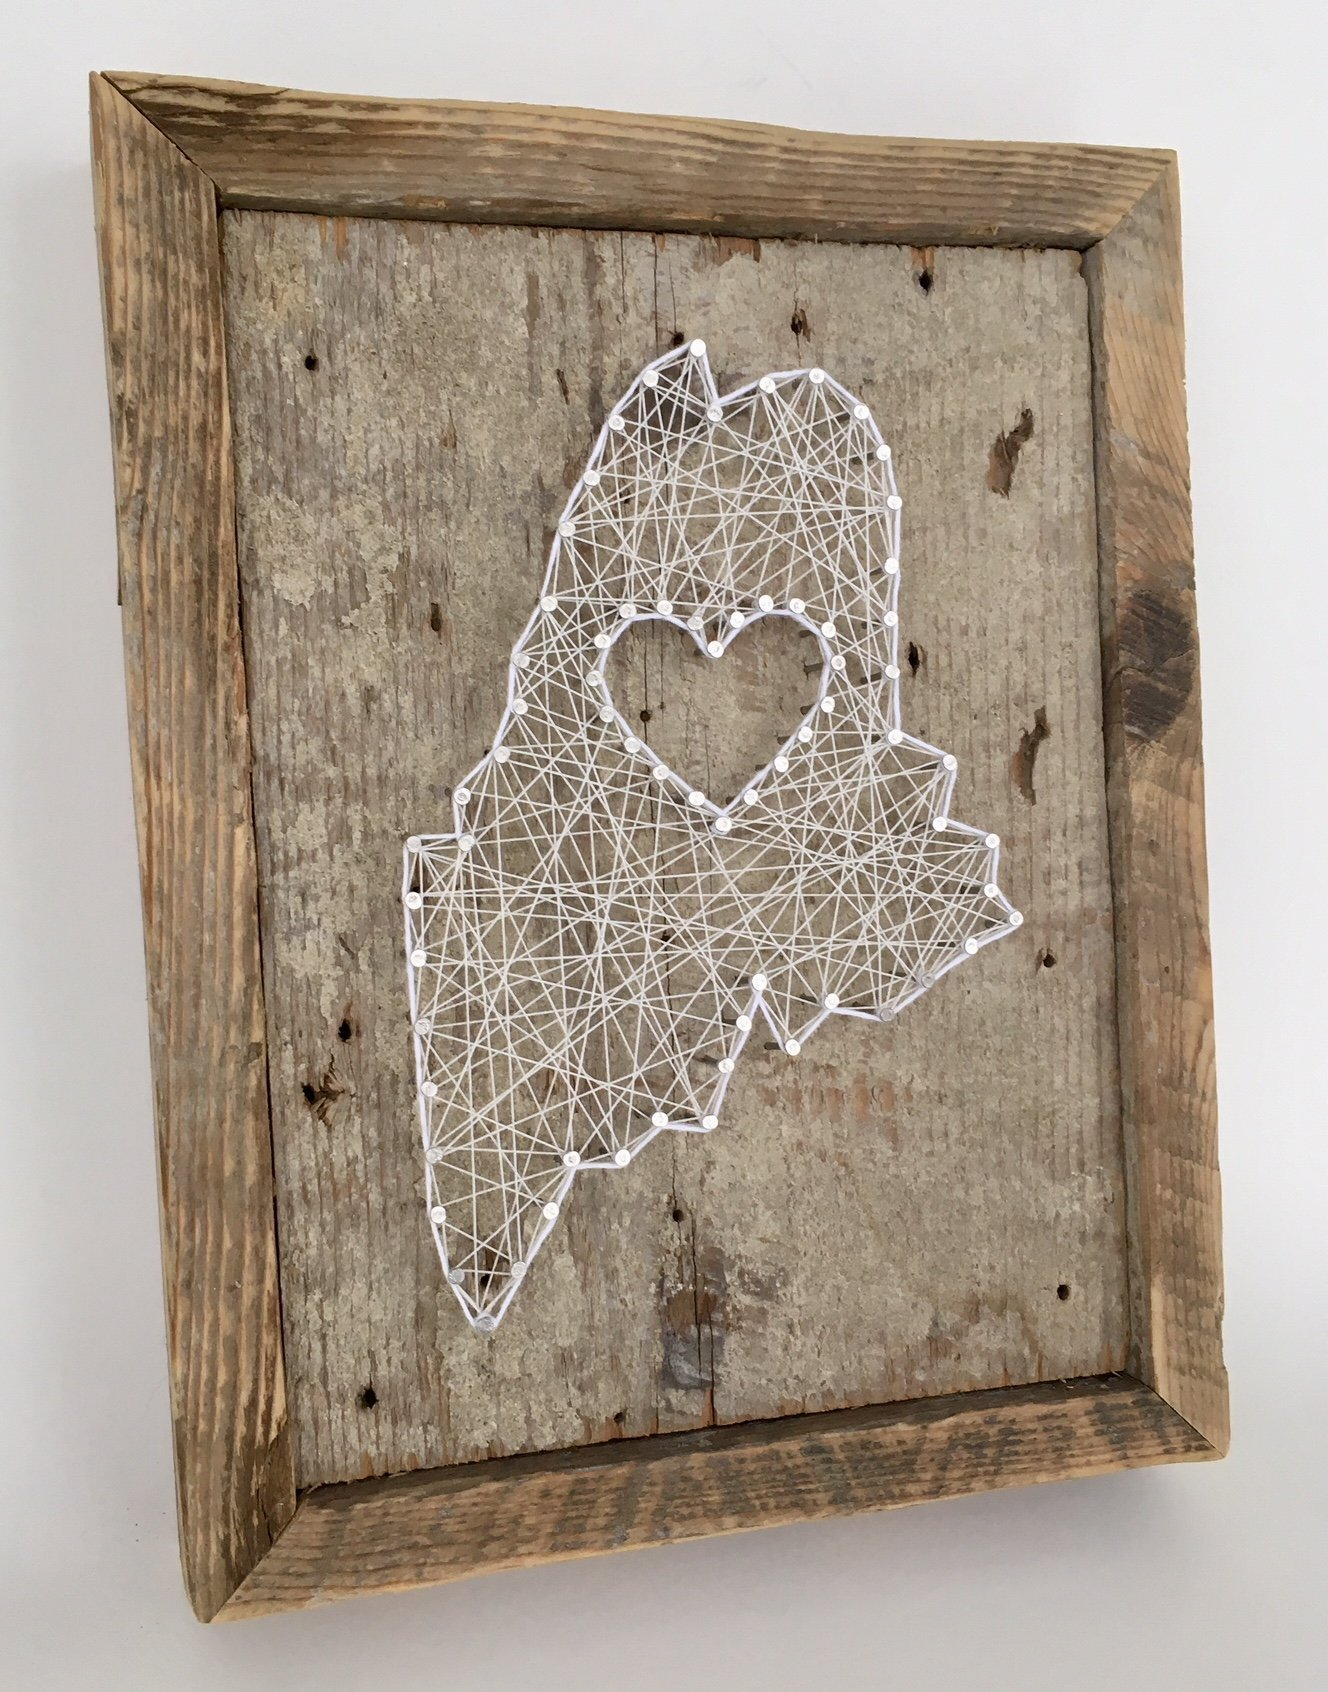 Framed Maine love reclaimed wooden string art sign- A unique Mother's Day, Wedding, Anniversary, Birthday, Valentine's Day, Christmas and housewarming gift. by Nail it Art (Image #1)